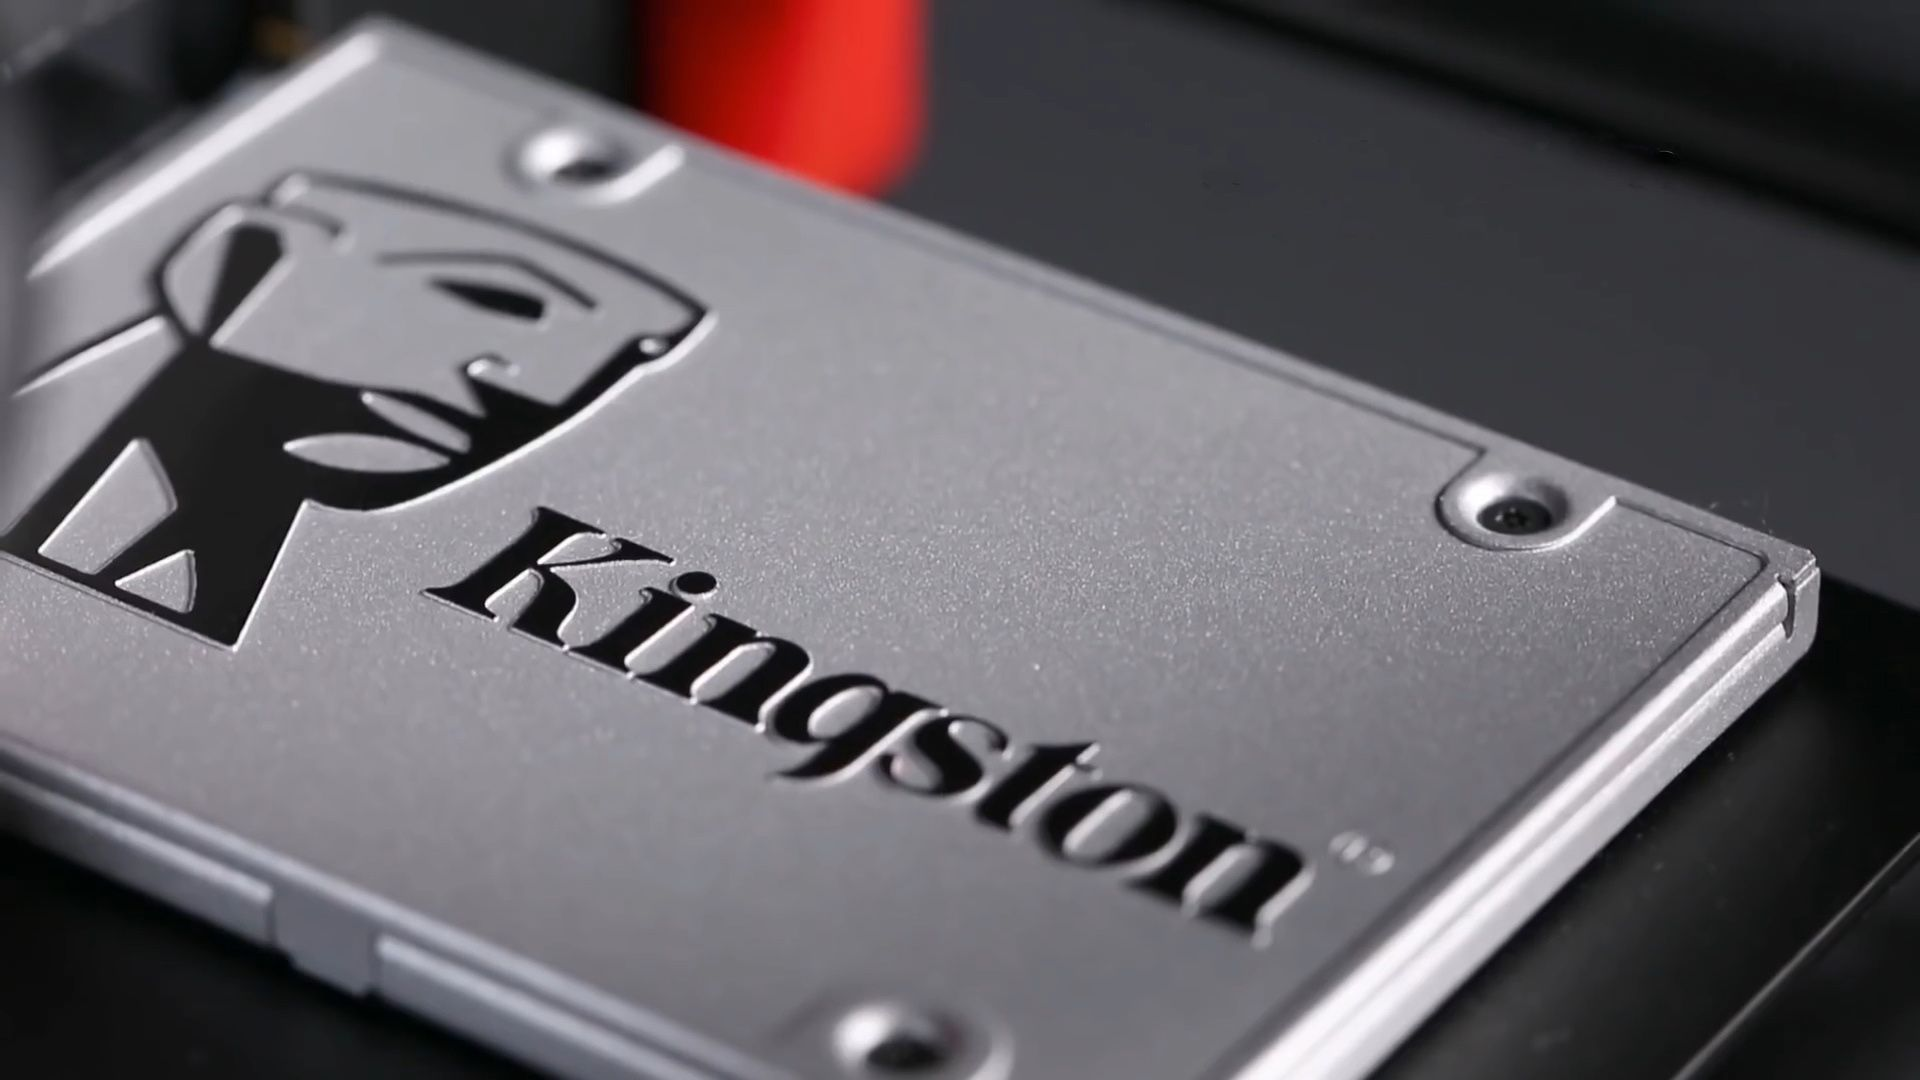 Ssd Kingston 120gb Uv400 Sata3 550mb/s - Original Lacrado